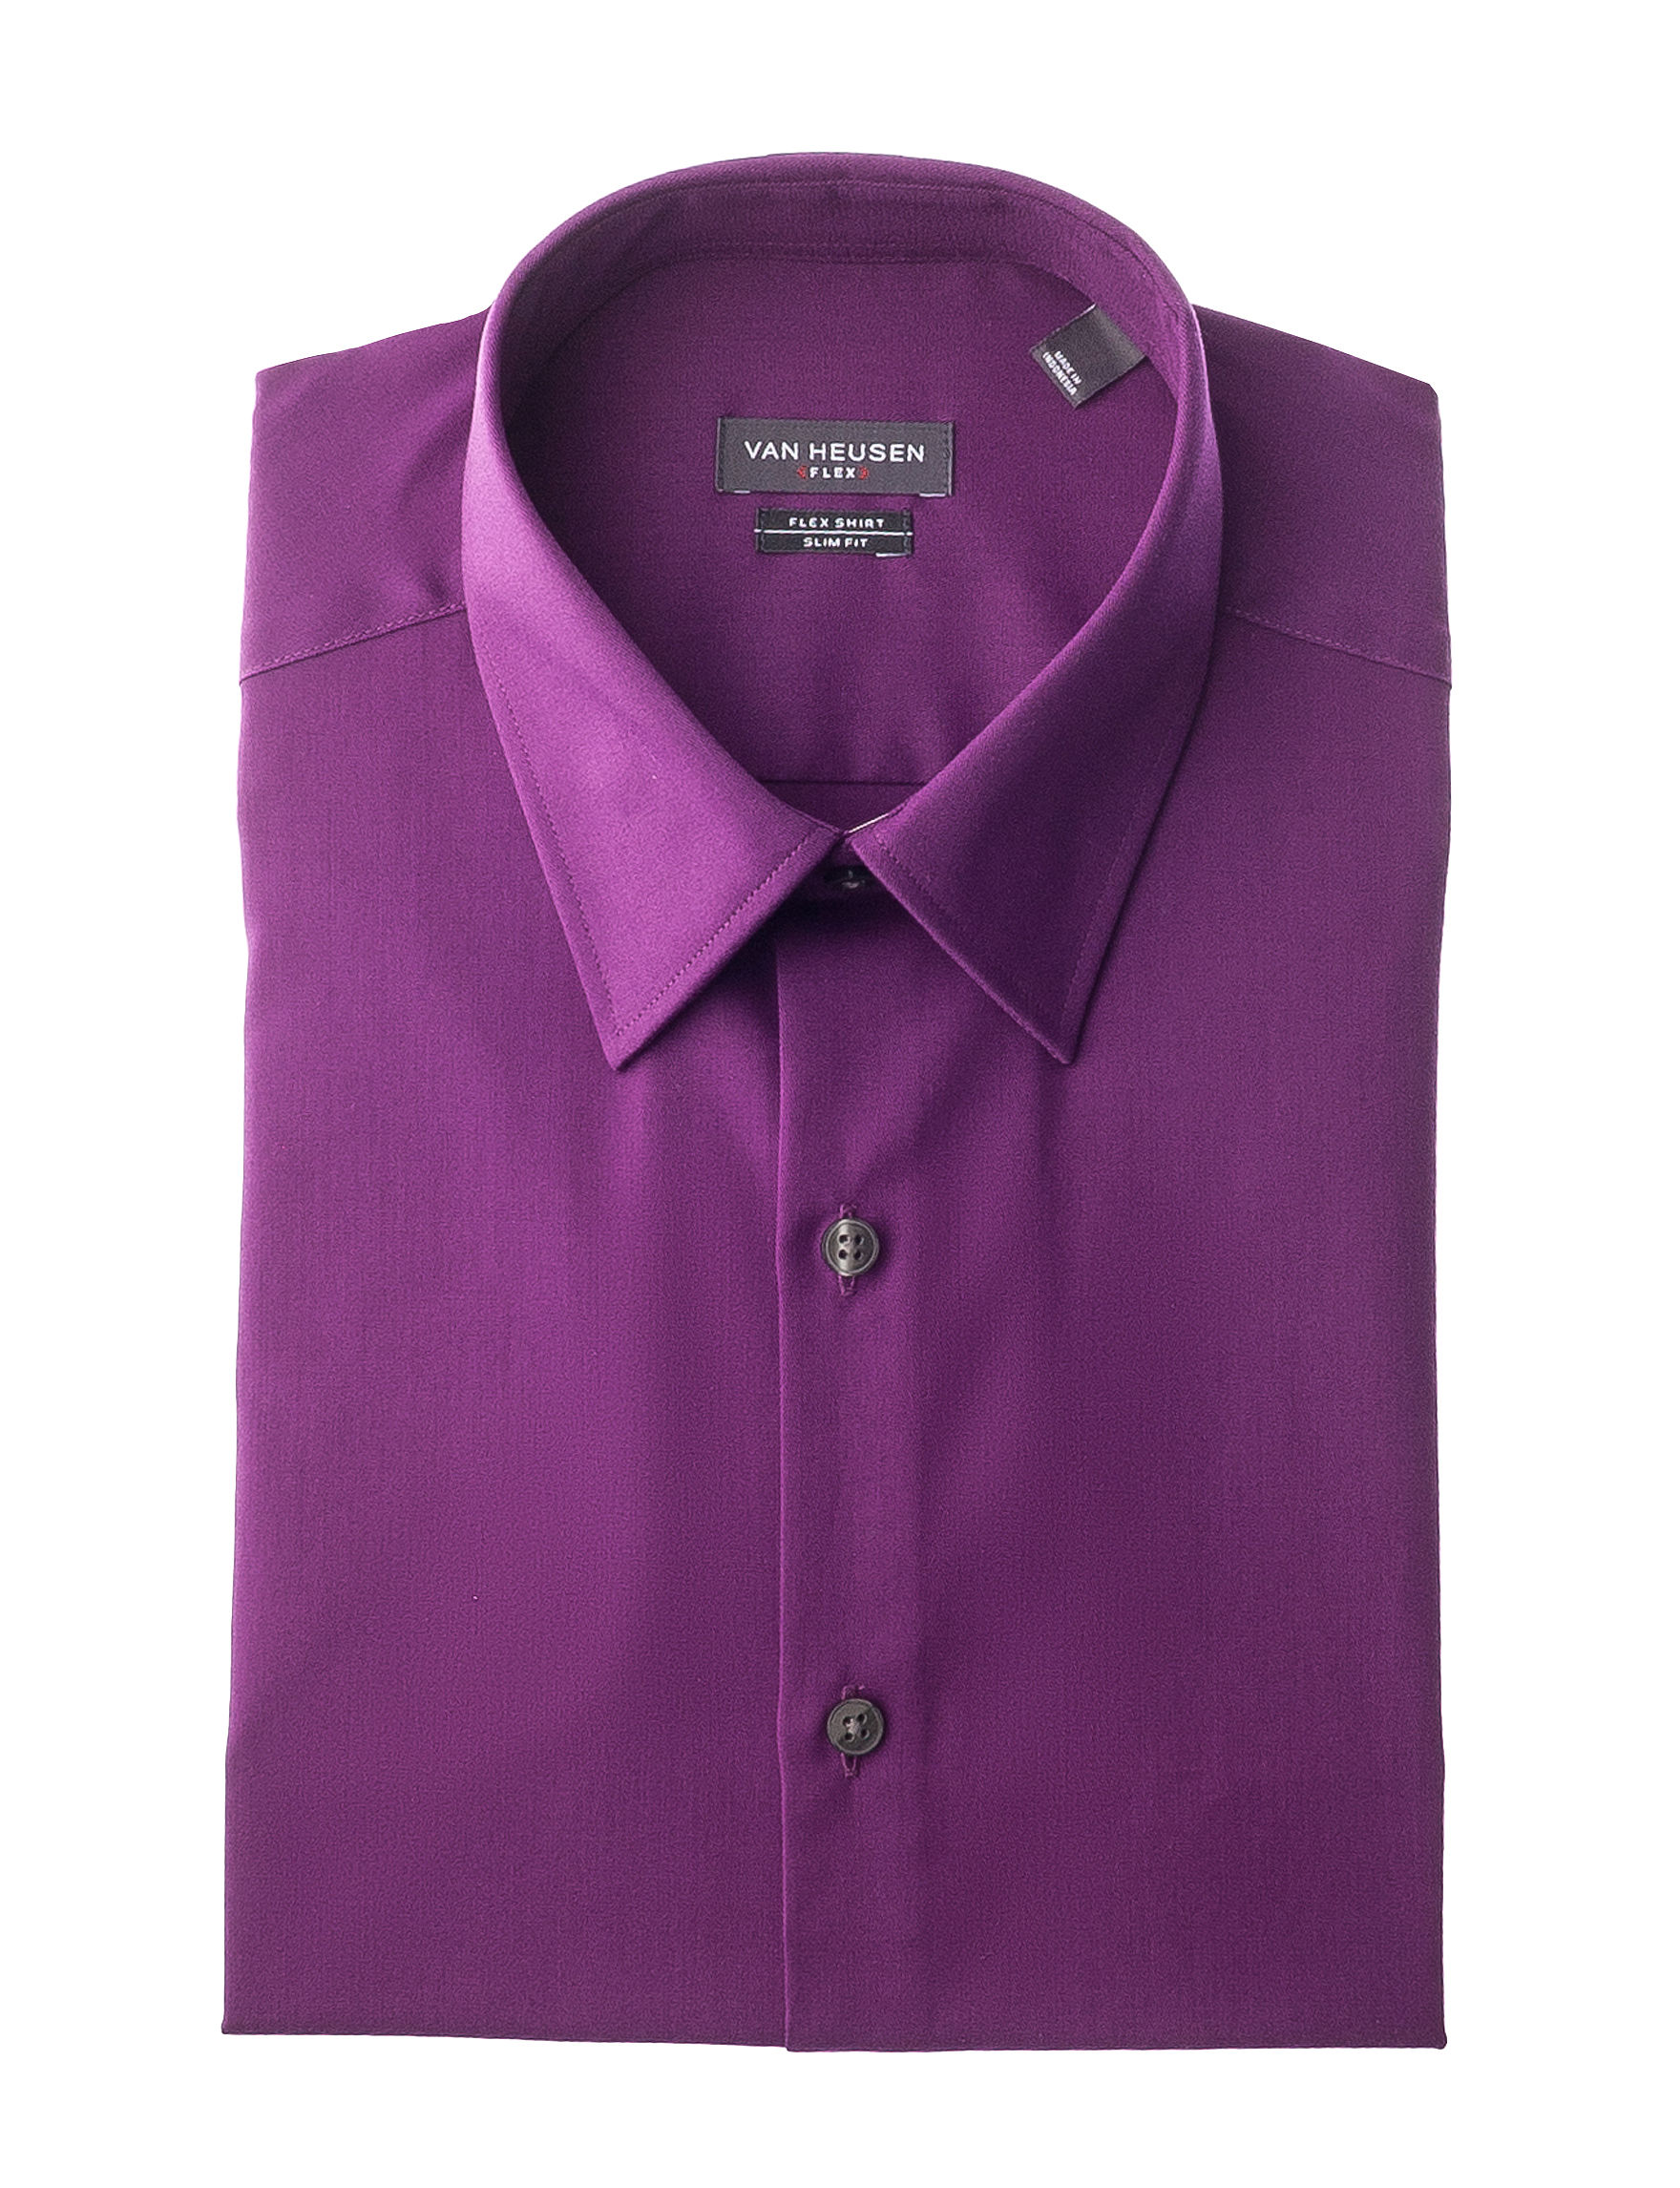 Van Heusen Purple Dress Shirts